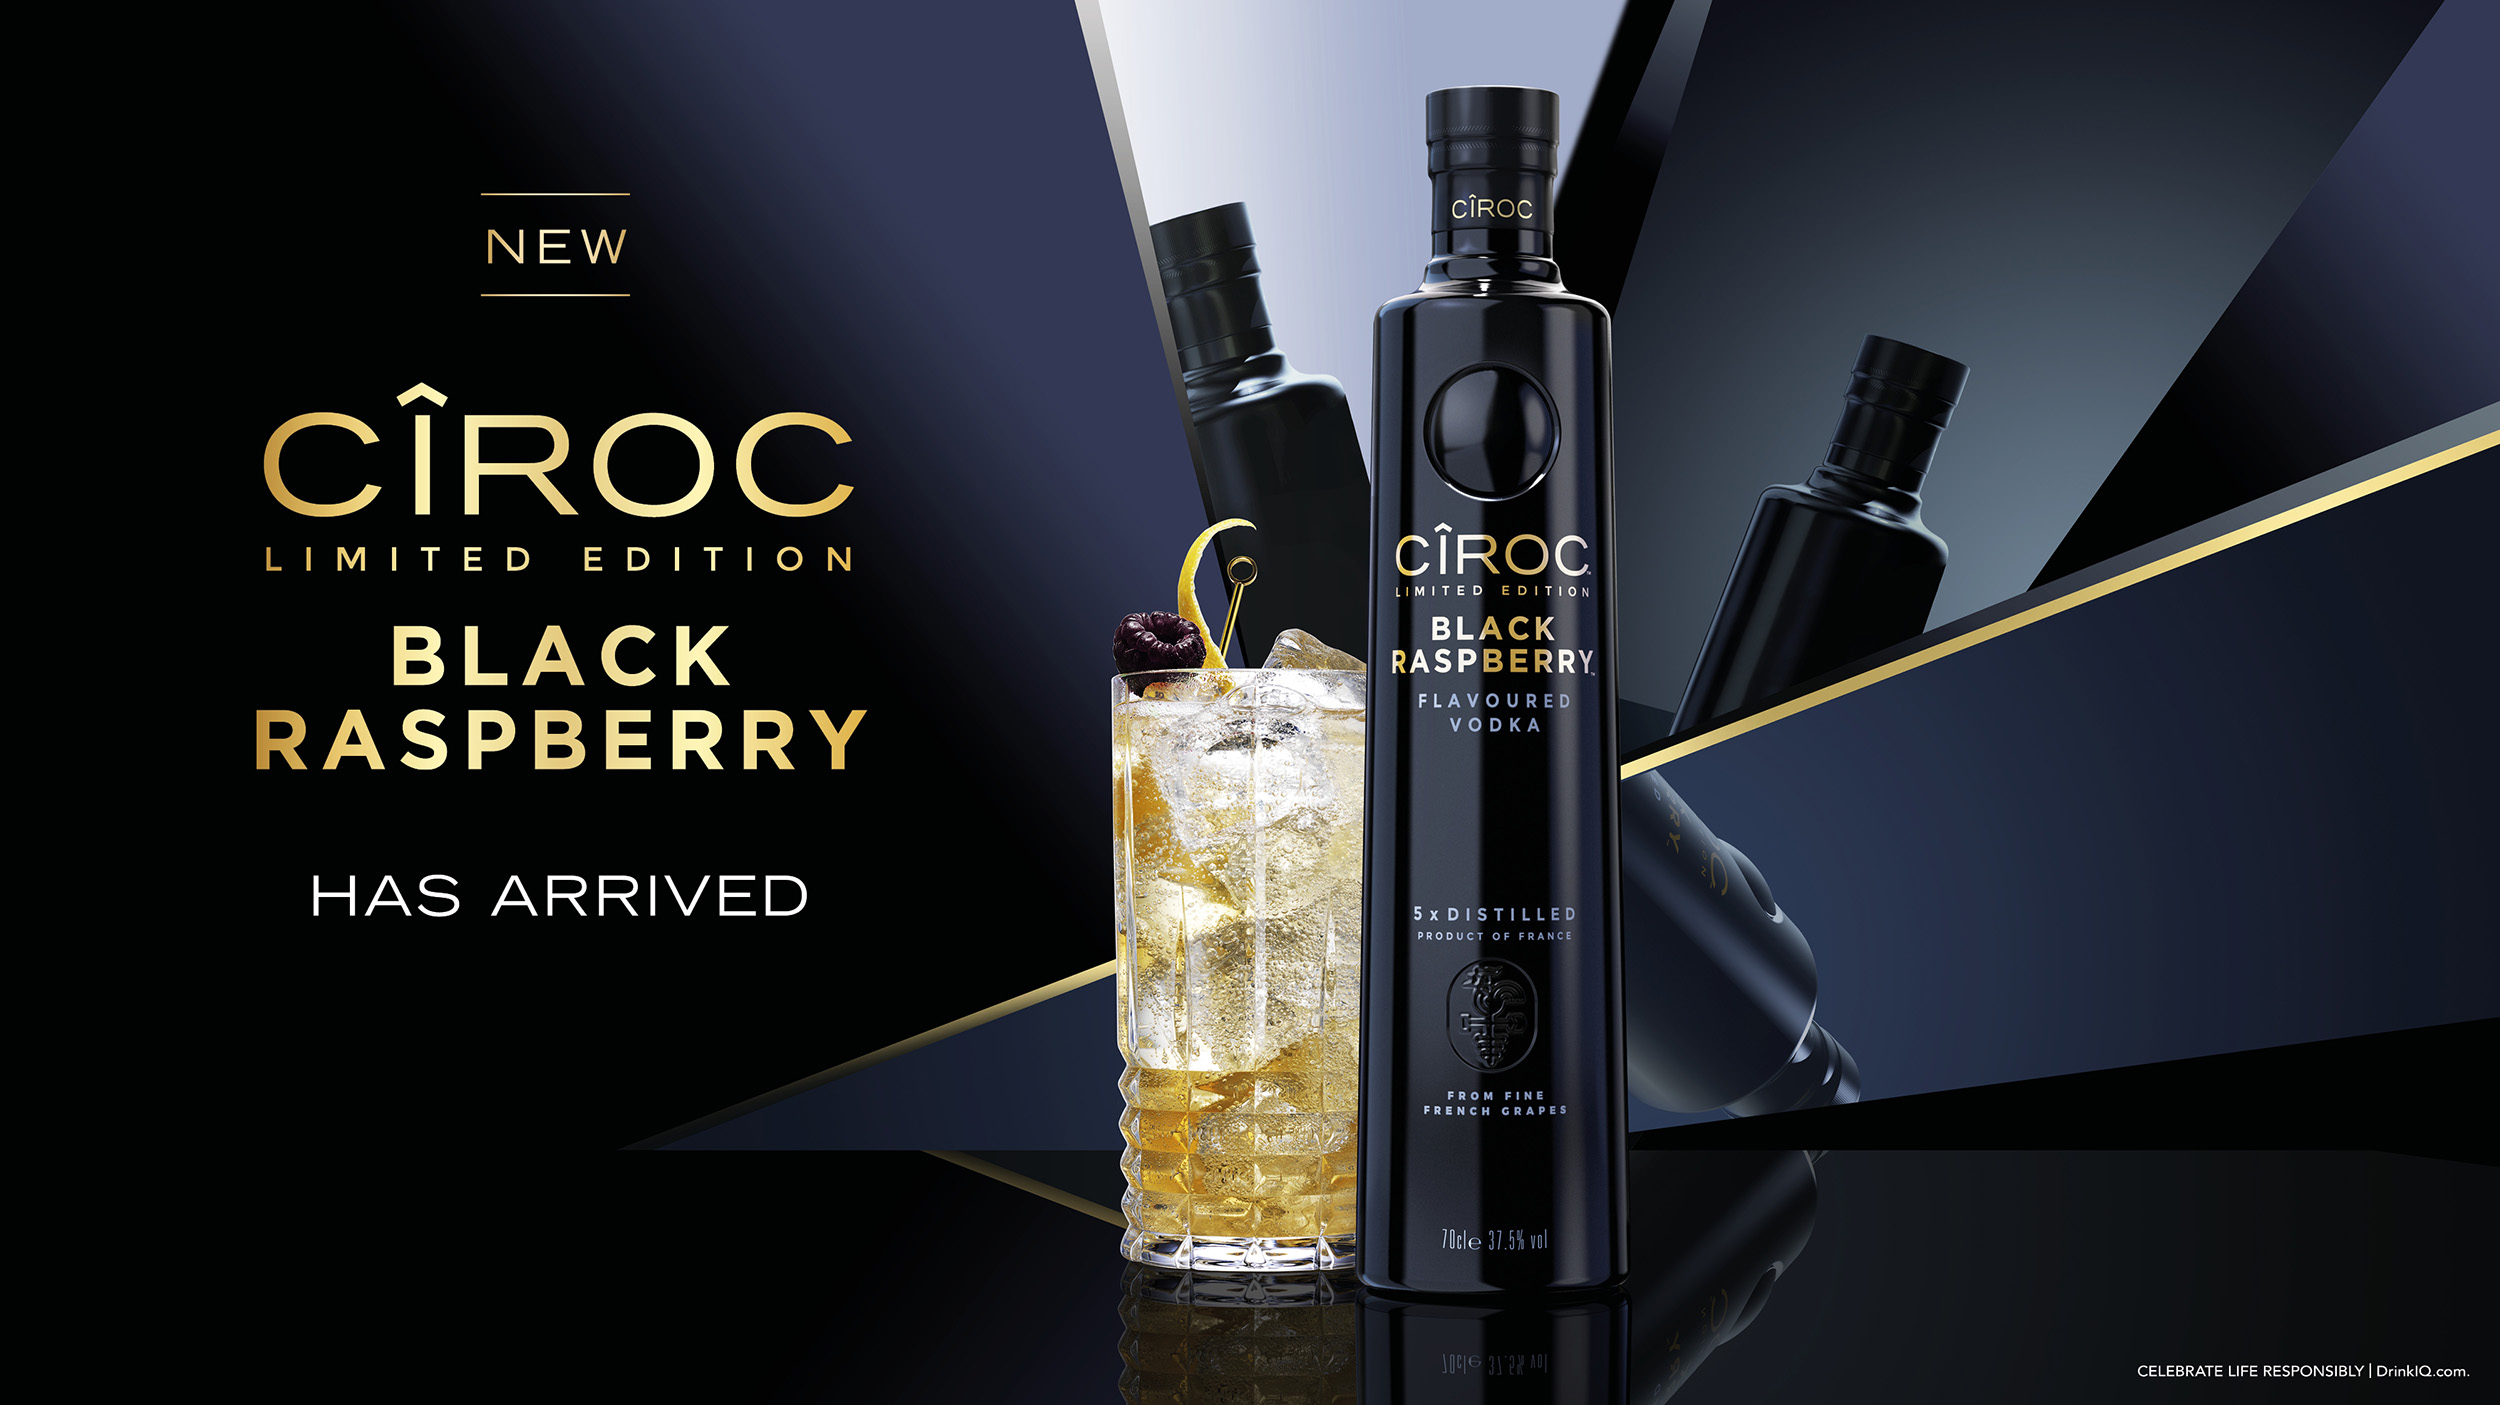 CIROC Black Raspberry Key Visual.jpg